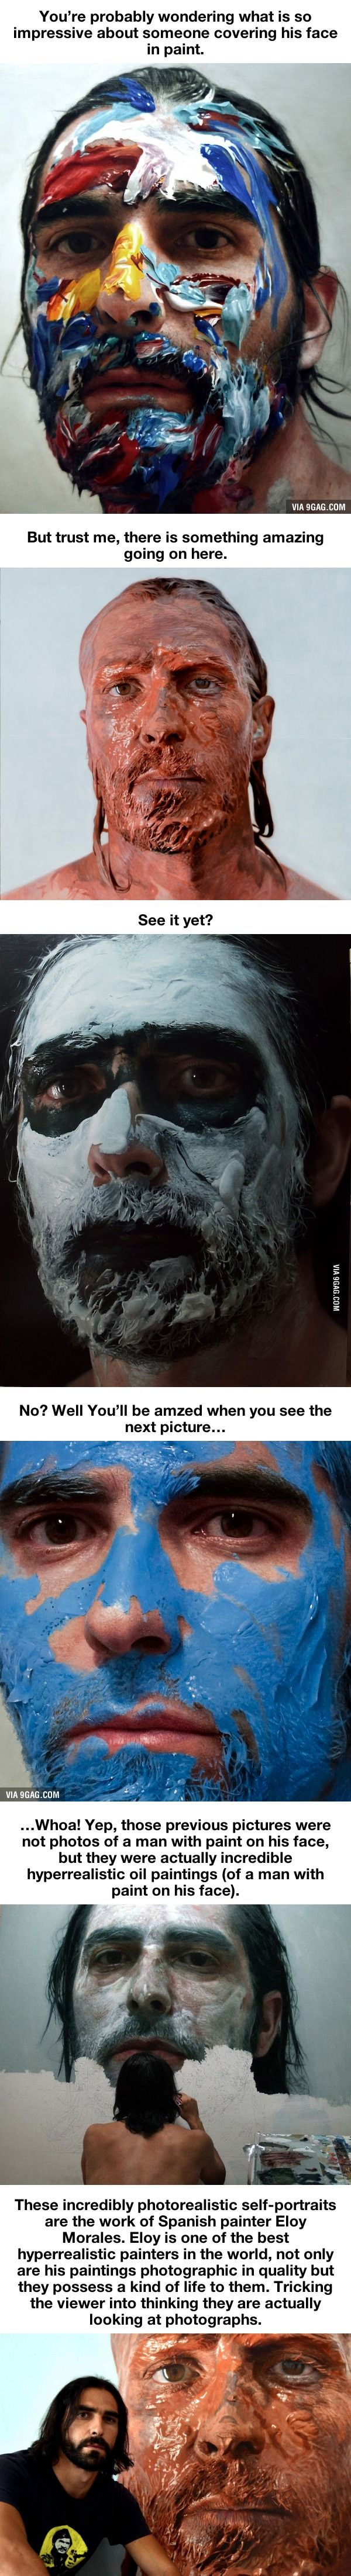 All Is Not As It Seems With The Paint Covered Faces Below - 9GAG